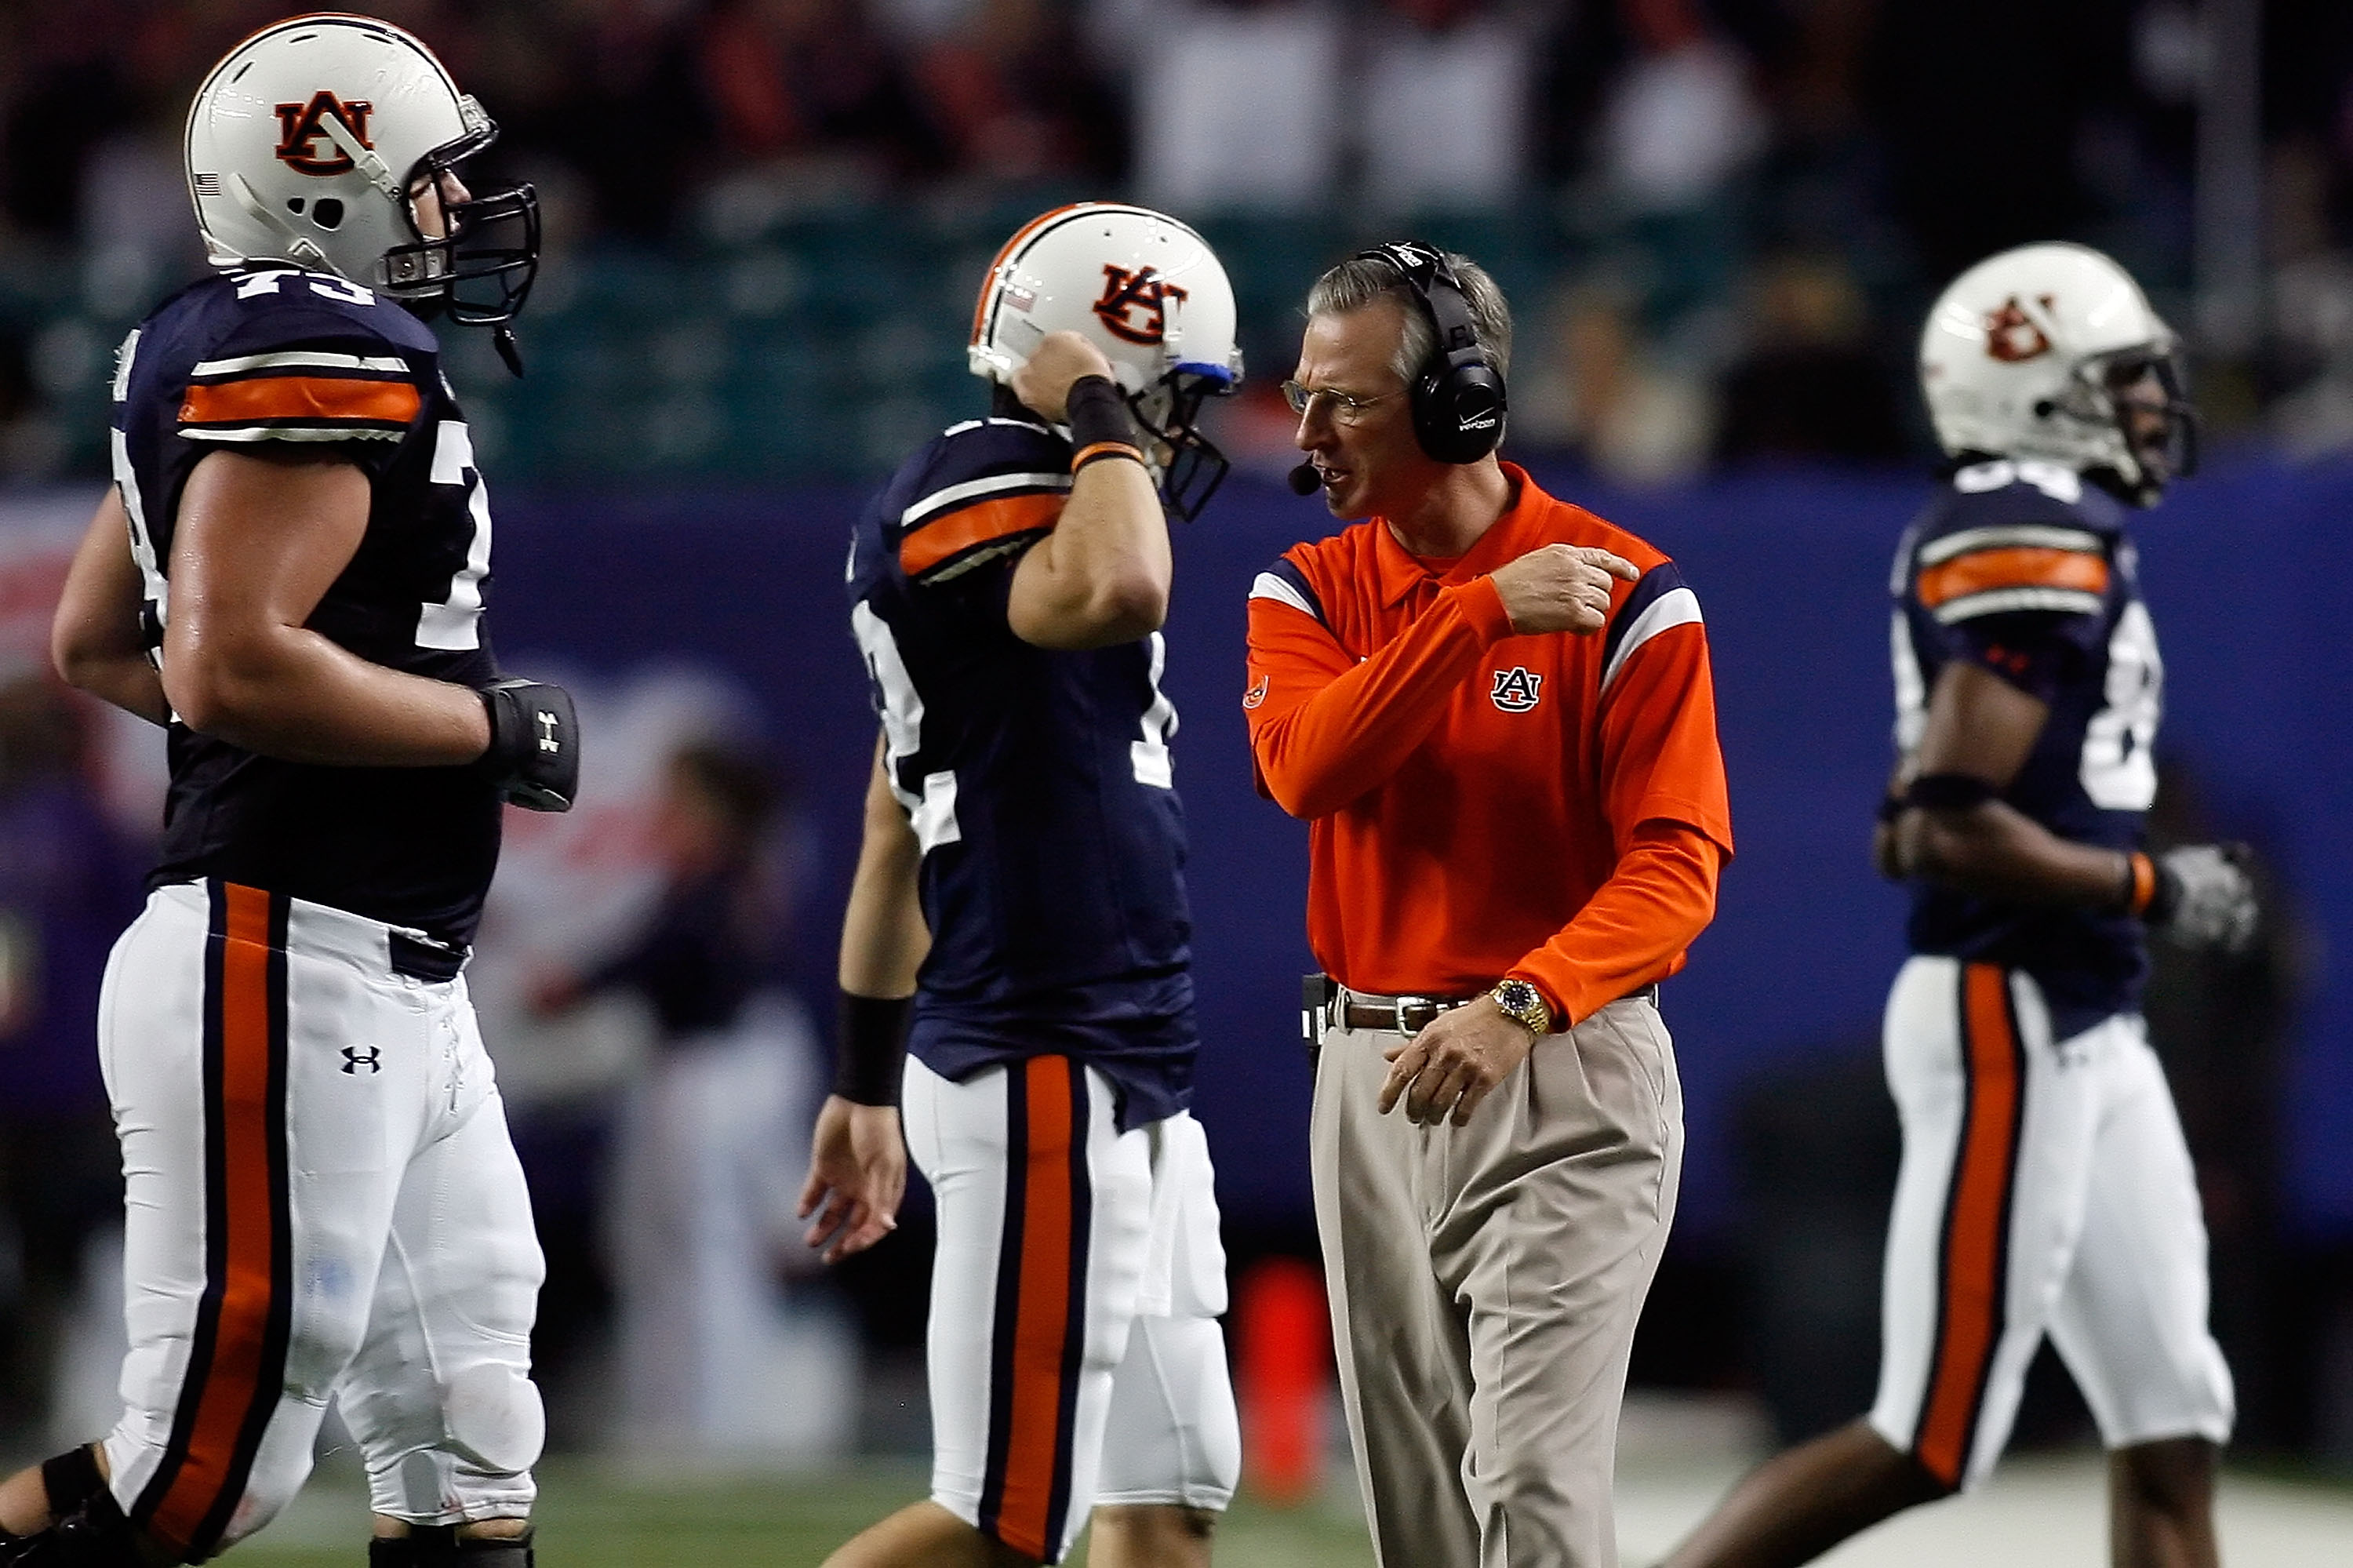 Tommy Tuberville running for U.S. Senate